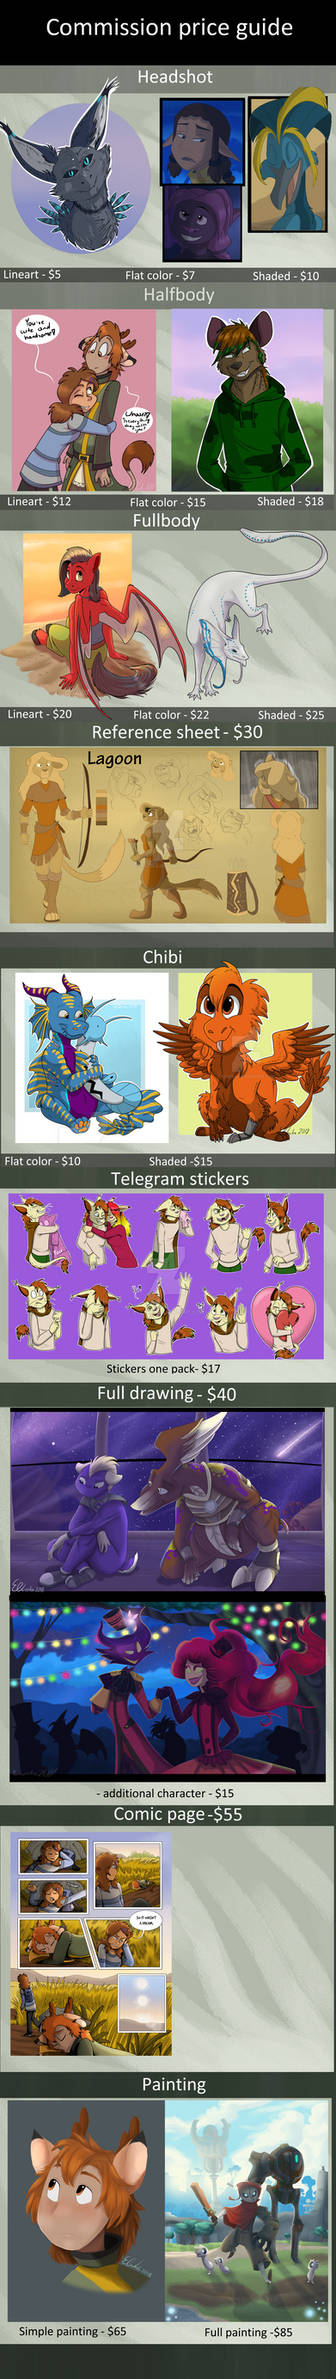 Commission price guide 2019 (open)